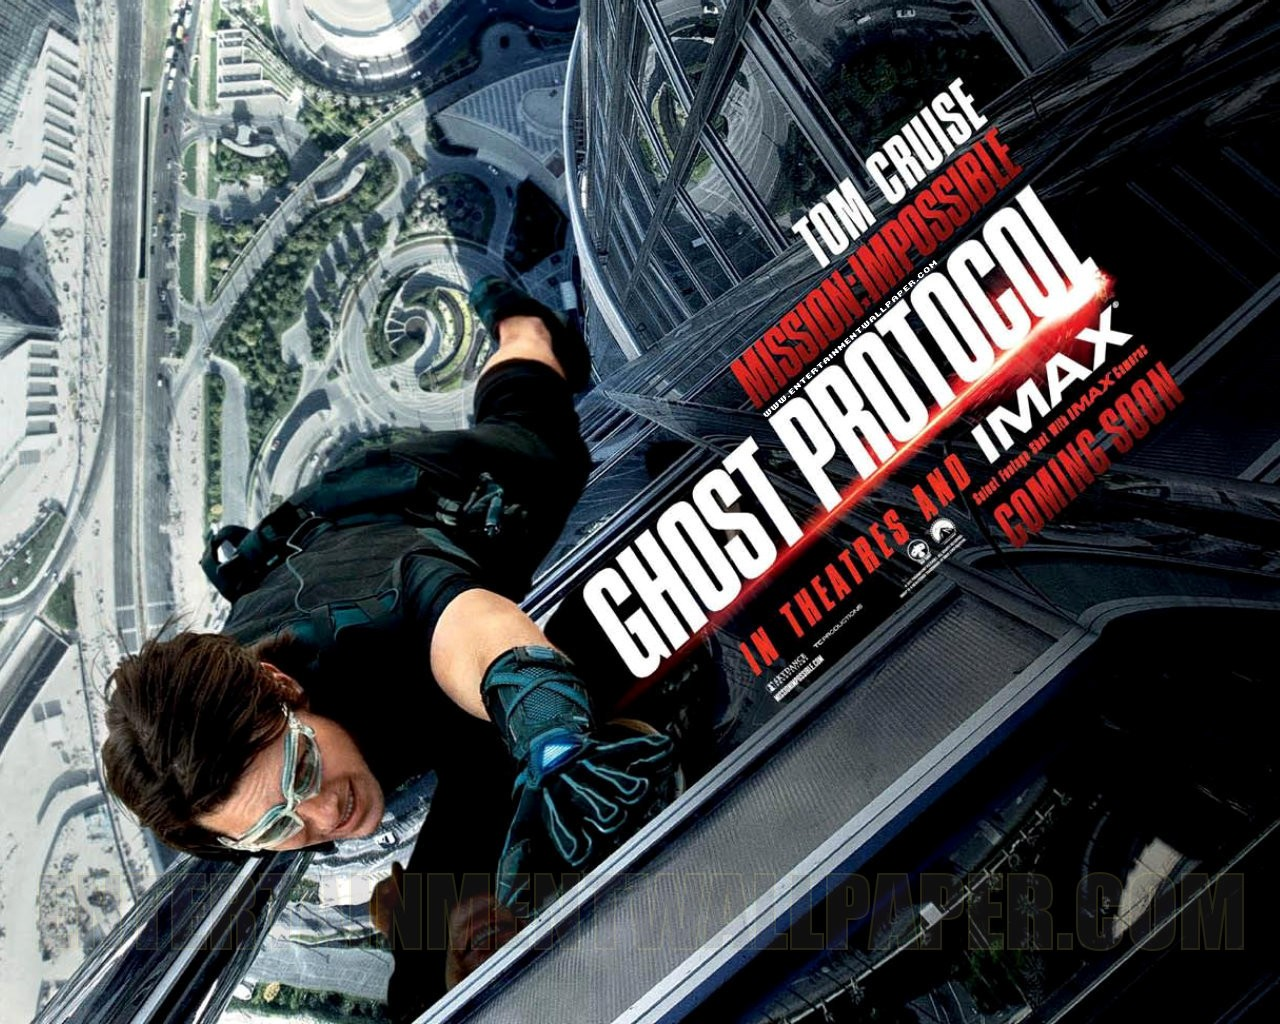 Mission Impossible 4 Wallpapers 14